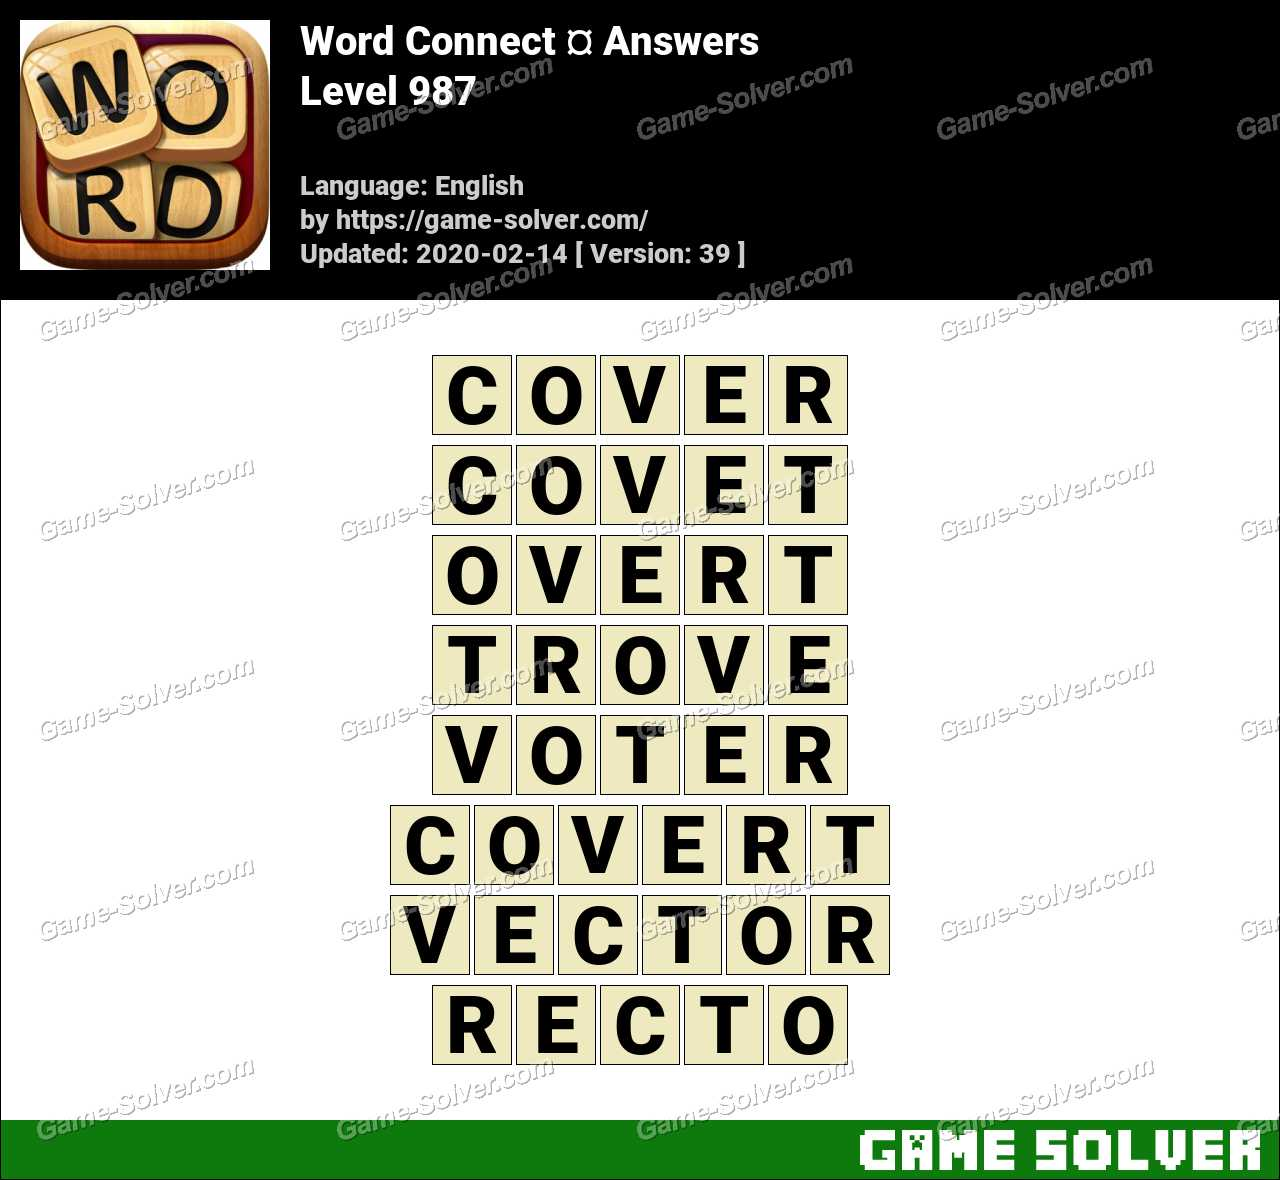 Word Connect Level 987 Answers